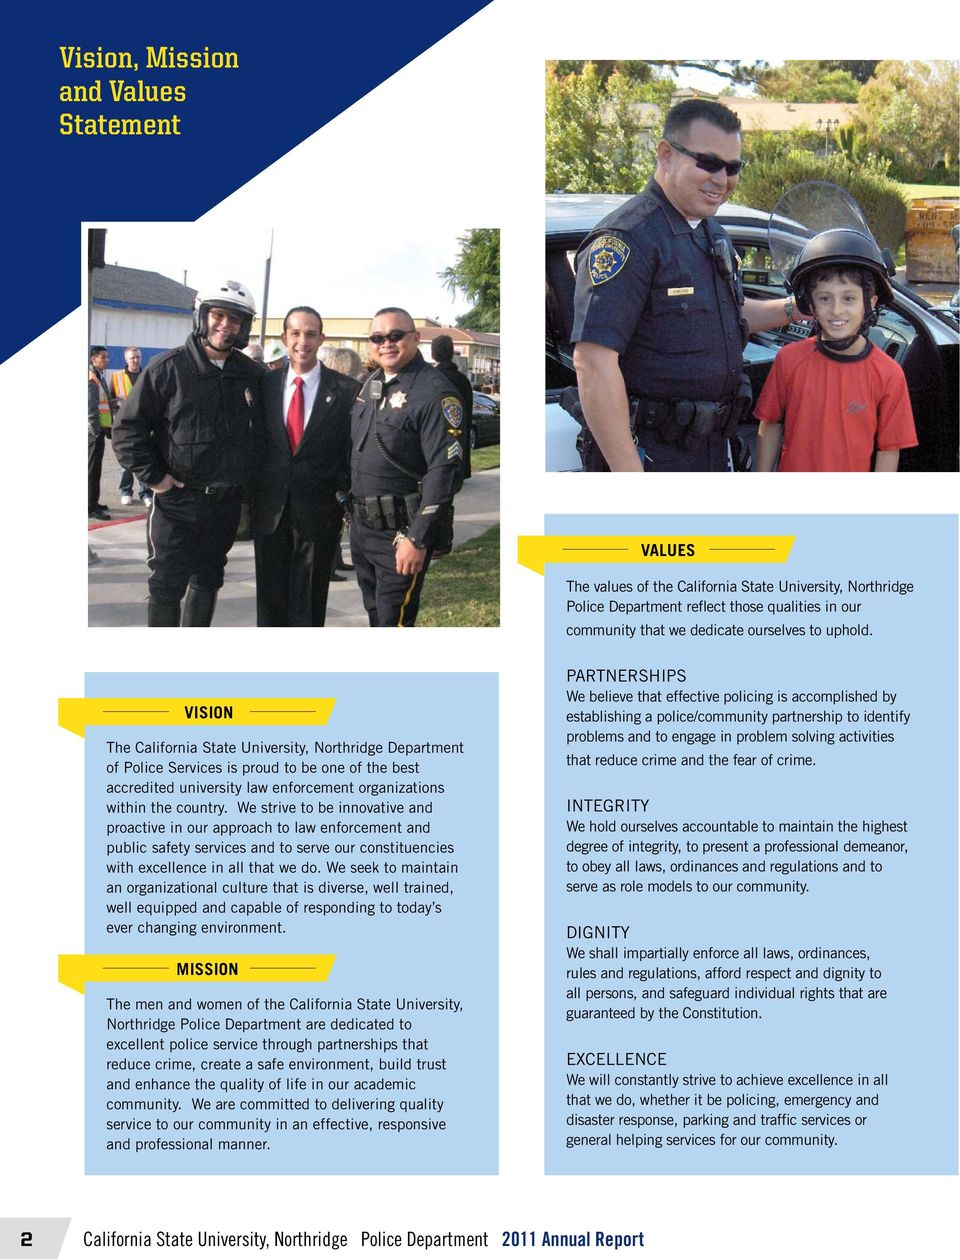 We strive to be innovative and proactive in our approach to law enforcement and public safety services and to serve our constituencies with excellence in all that we do.